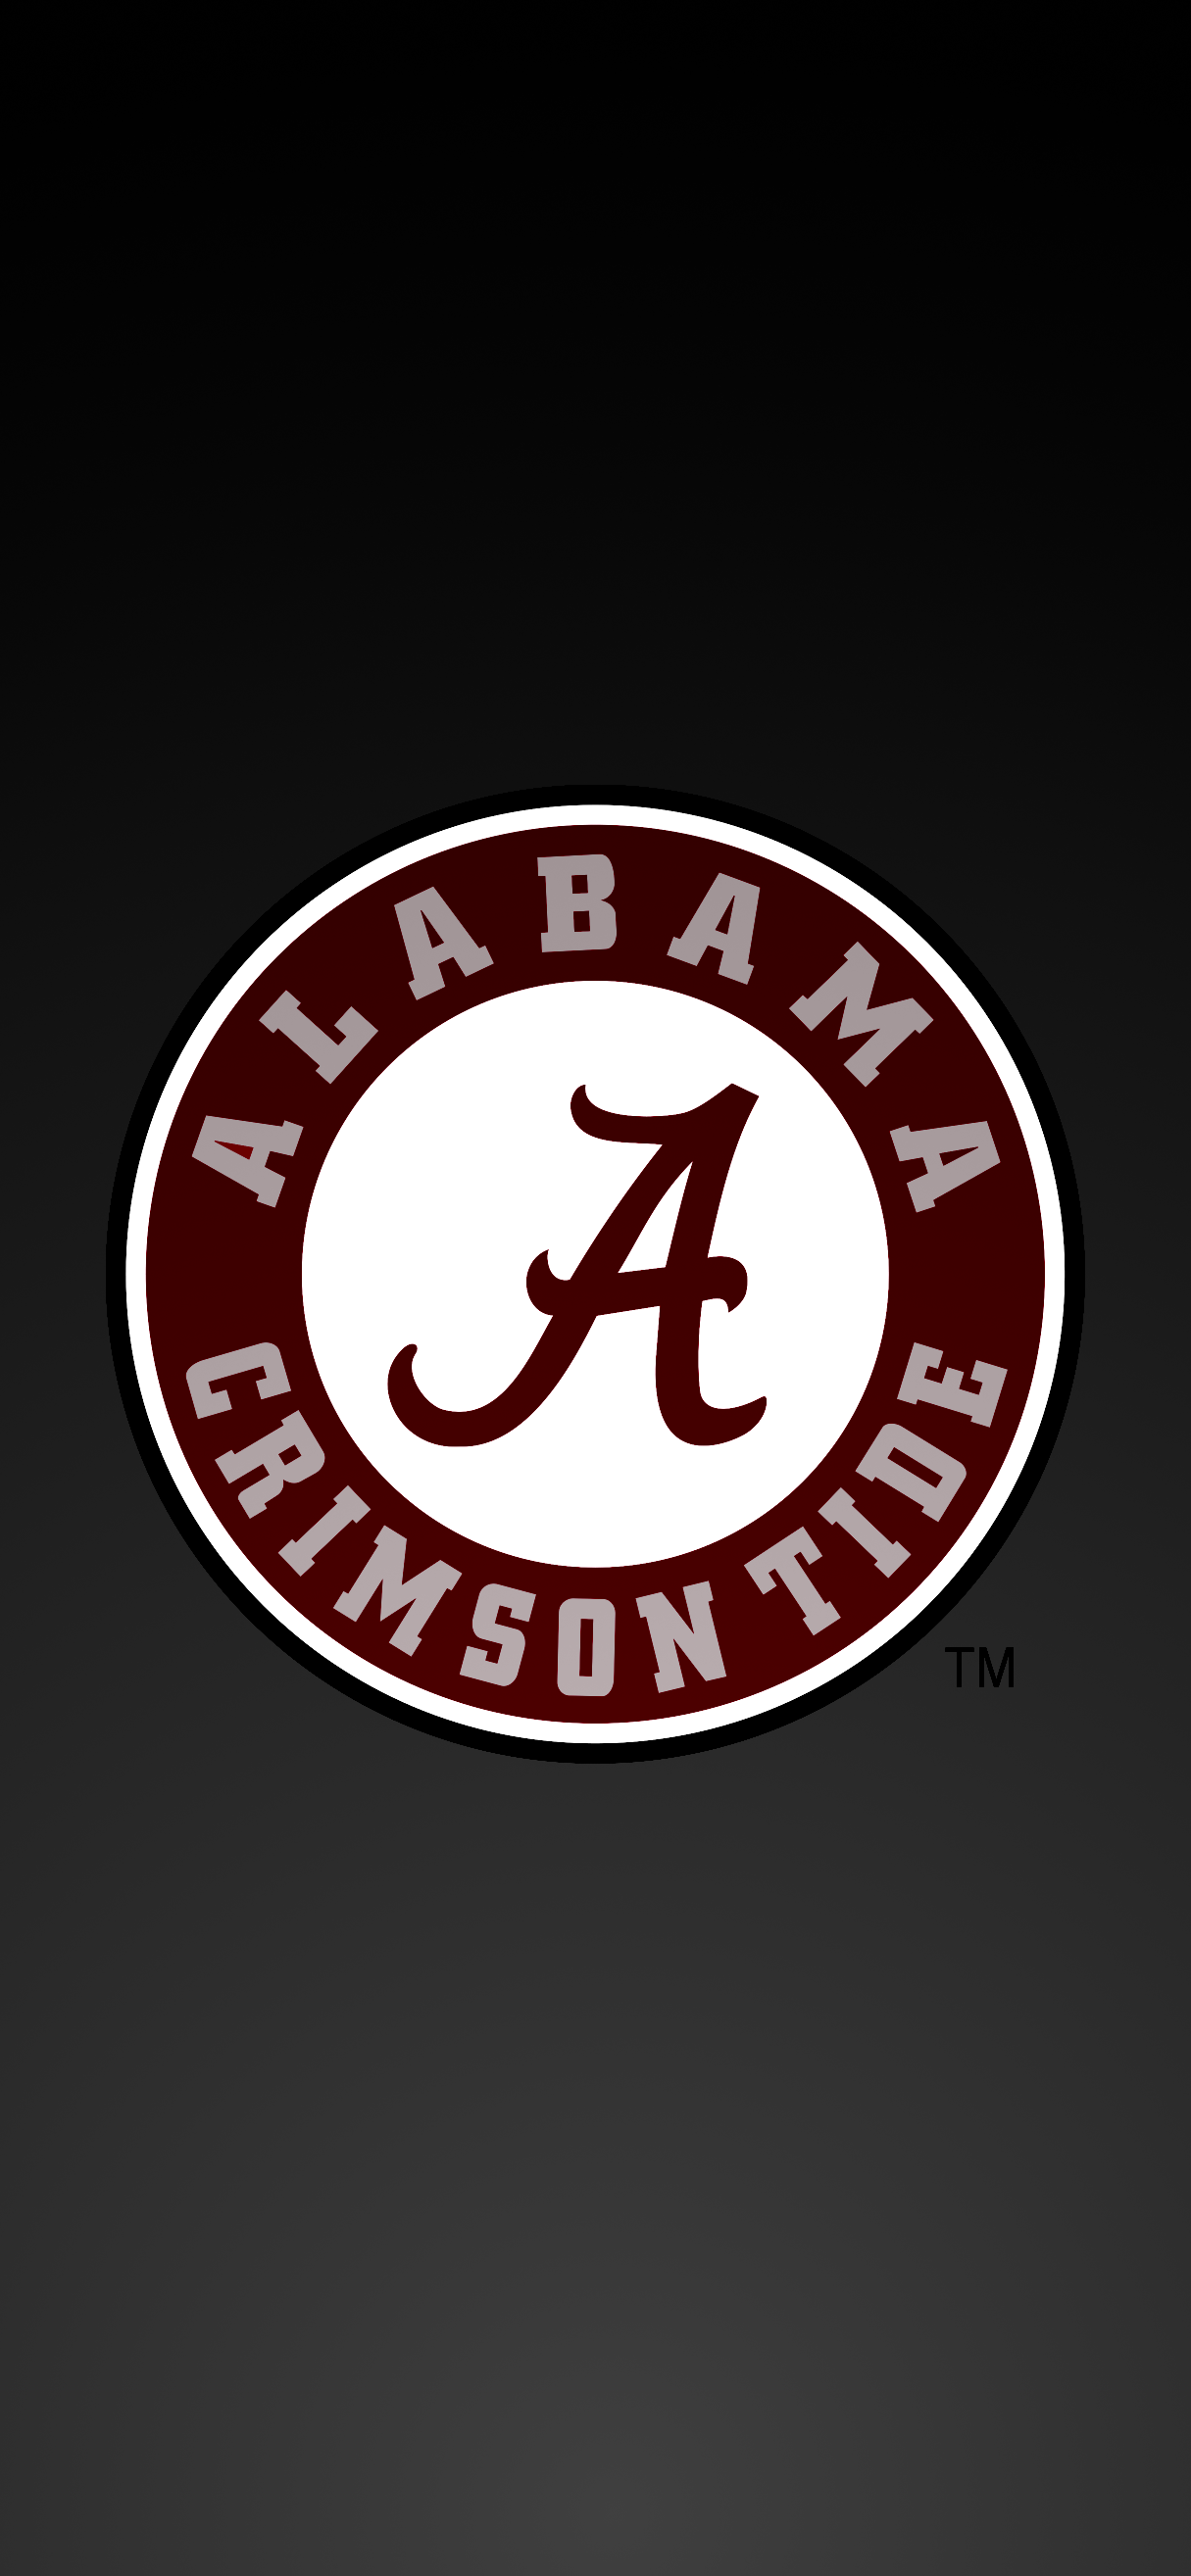 Bama 2 Alabama Crimson Tide Logo Alabama Crimson Tide Football Alabama Crimson Tide